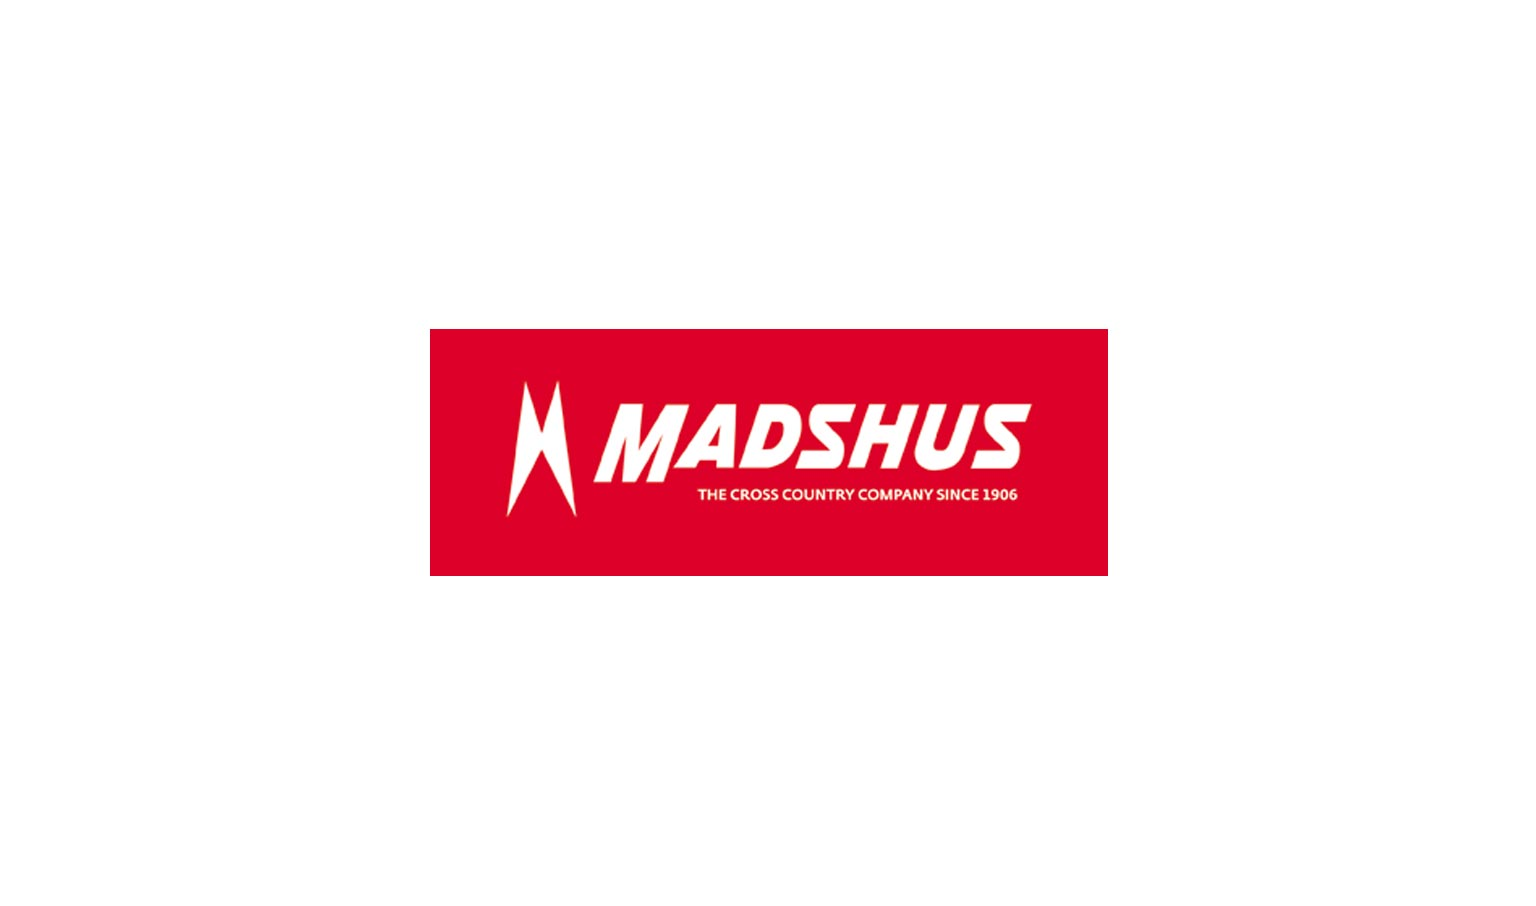 Logotyp Madshus A/S